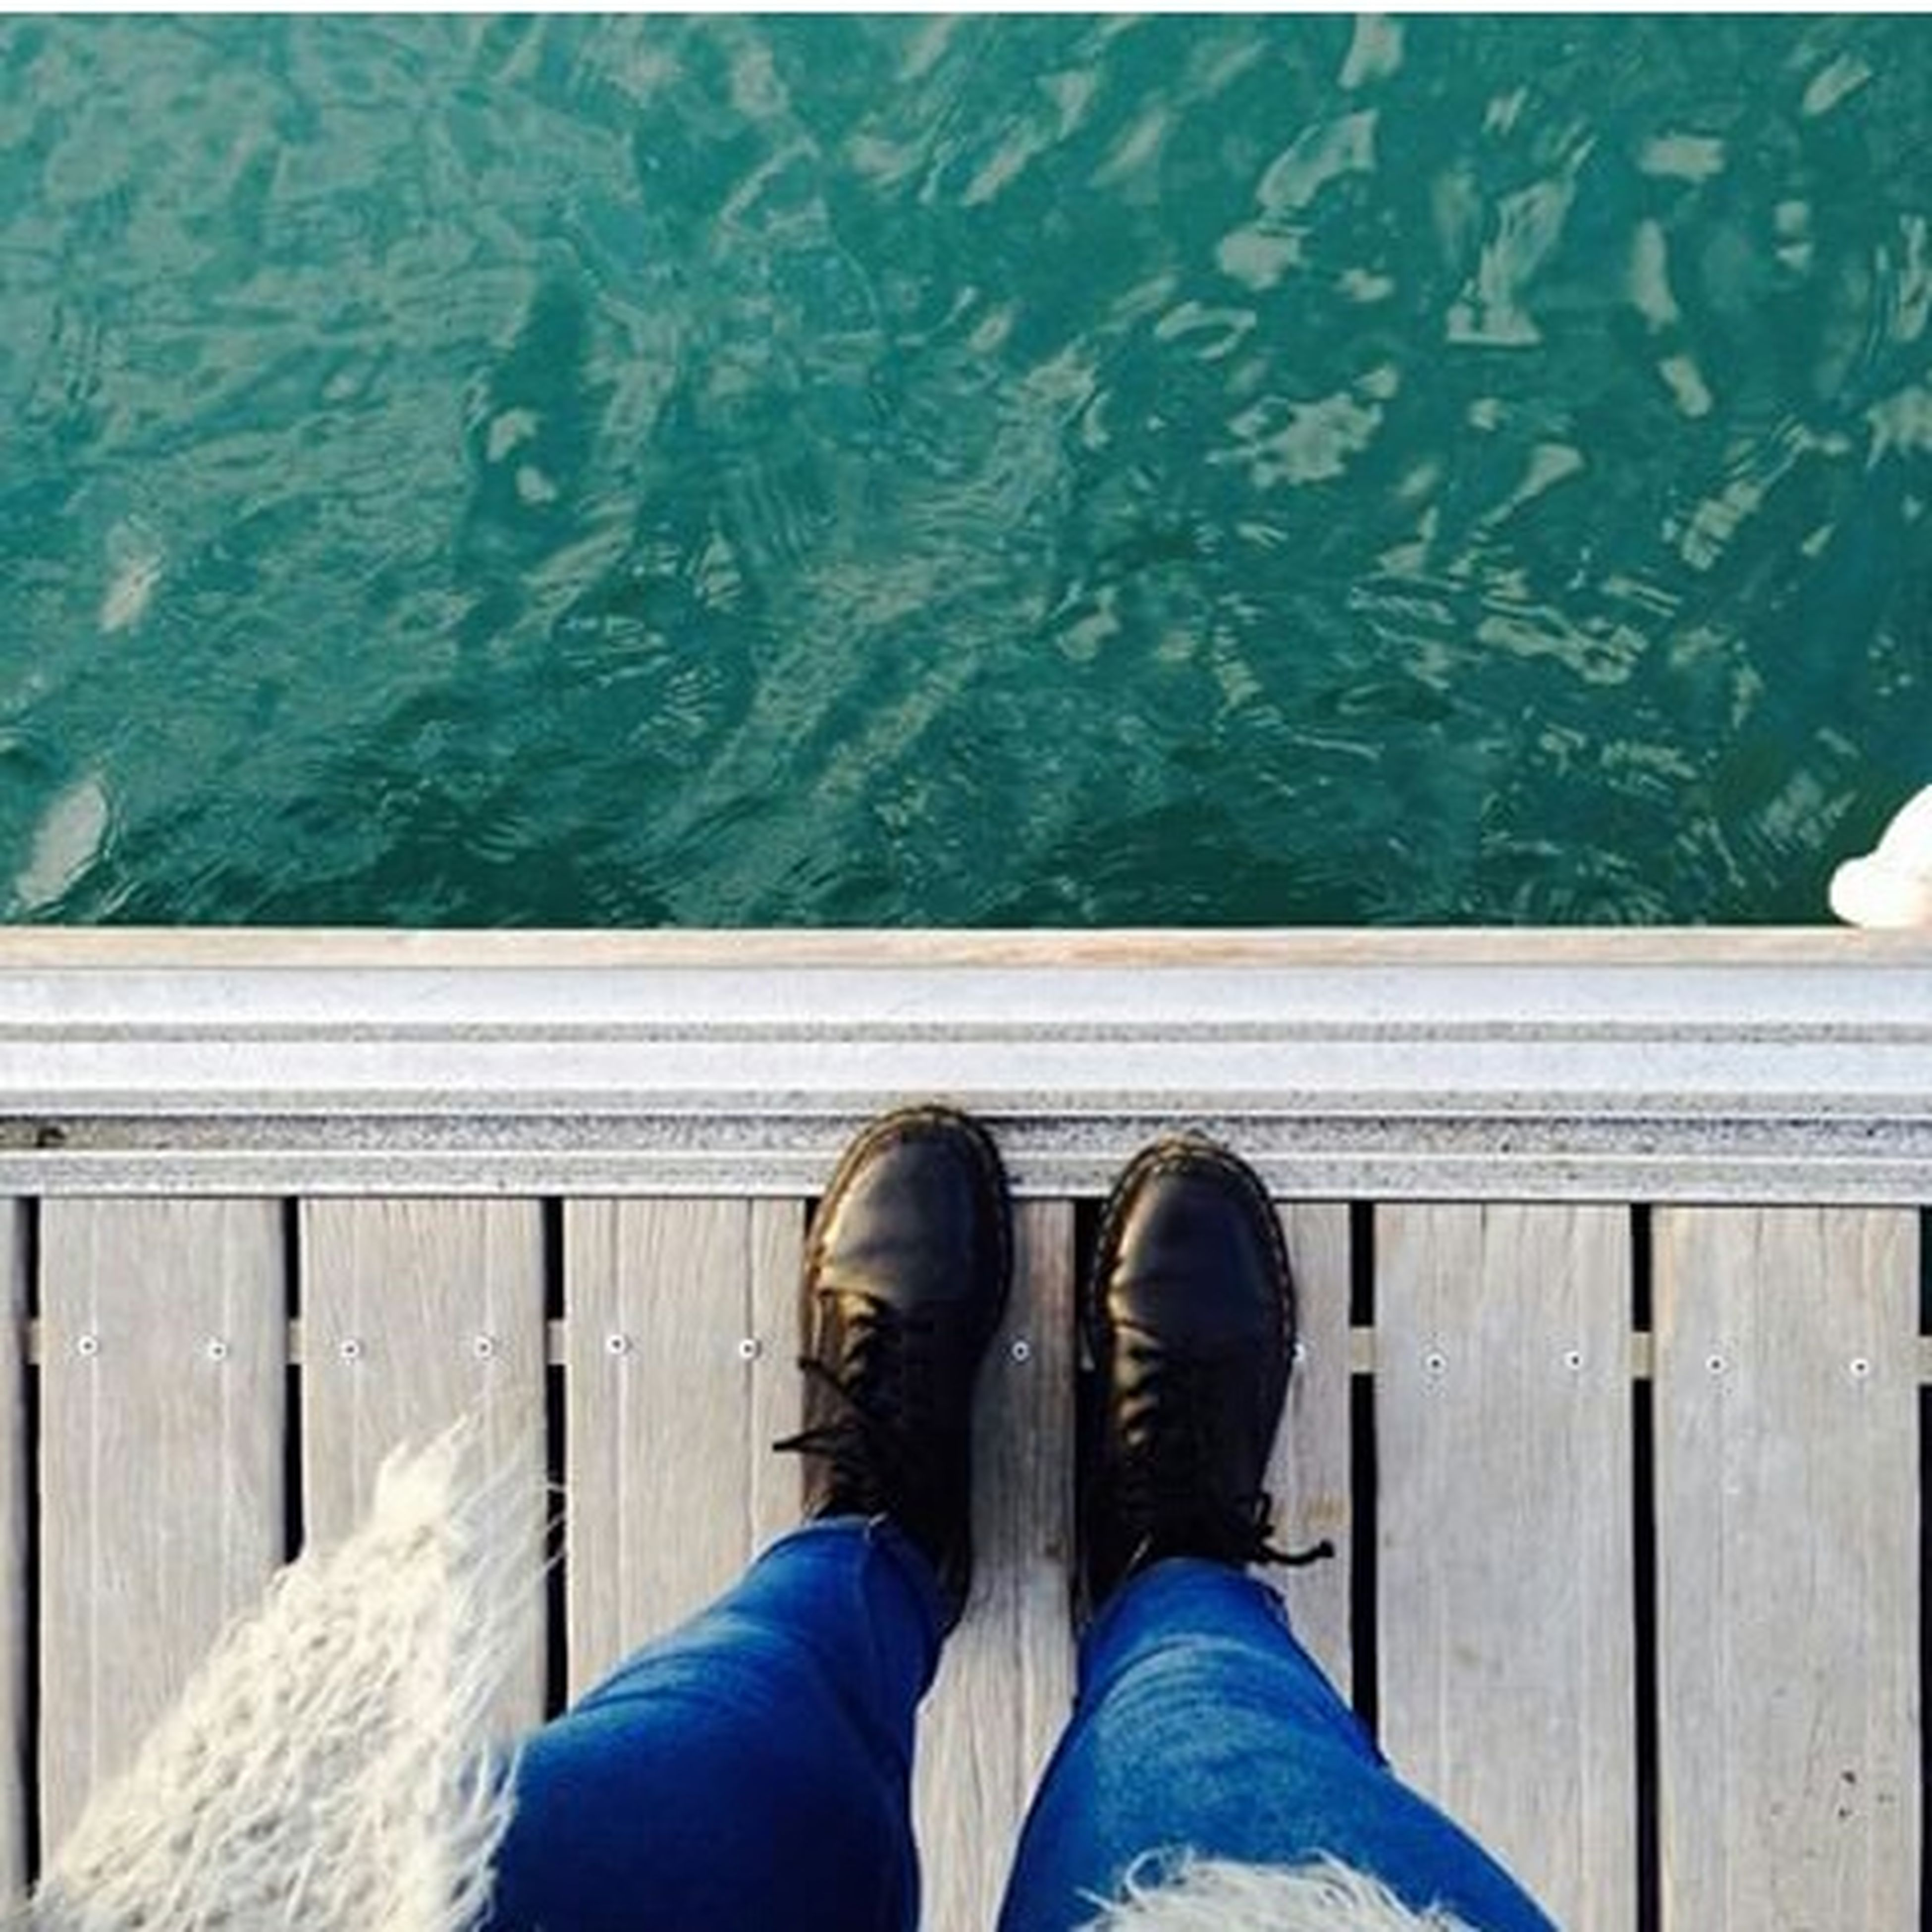 low section, person, personal perspective, shoe, human foot, lifestyles, standing, jeans, footwear, blue, relaxation, men, leisure activity, wood - material, sitting, pier, legs crossed at ankle